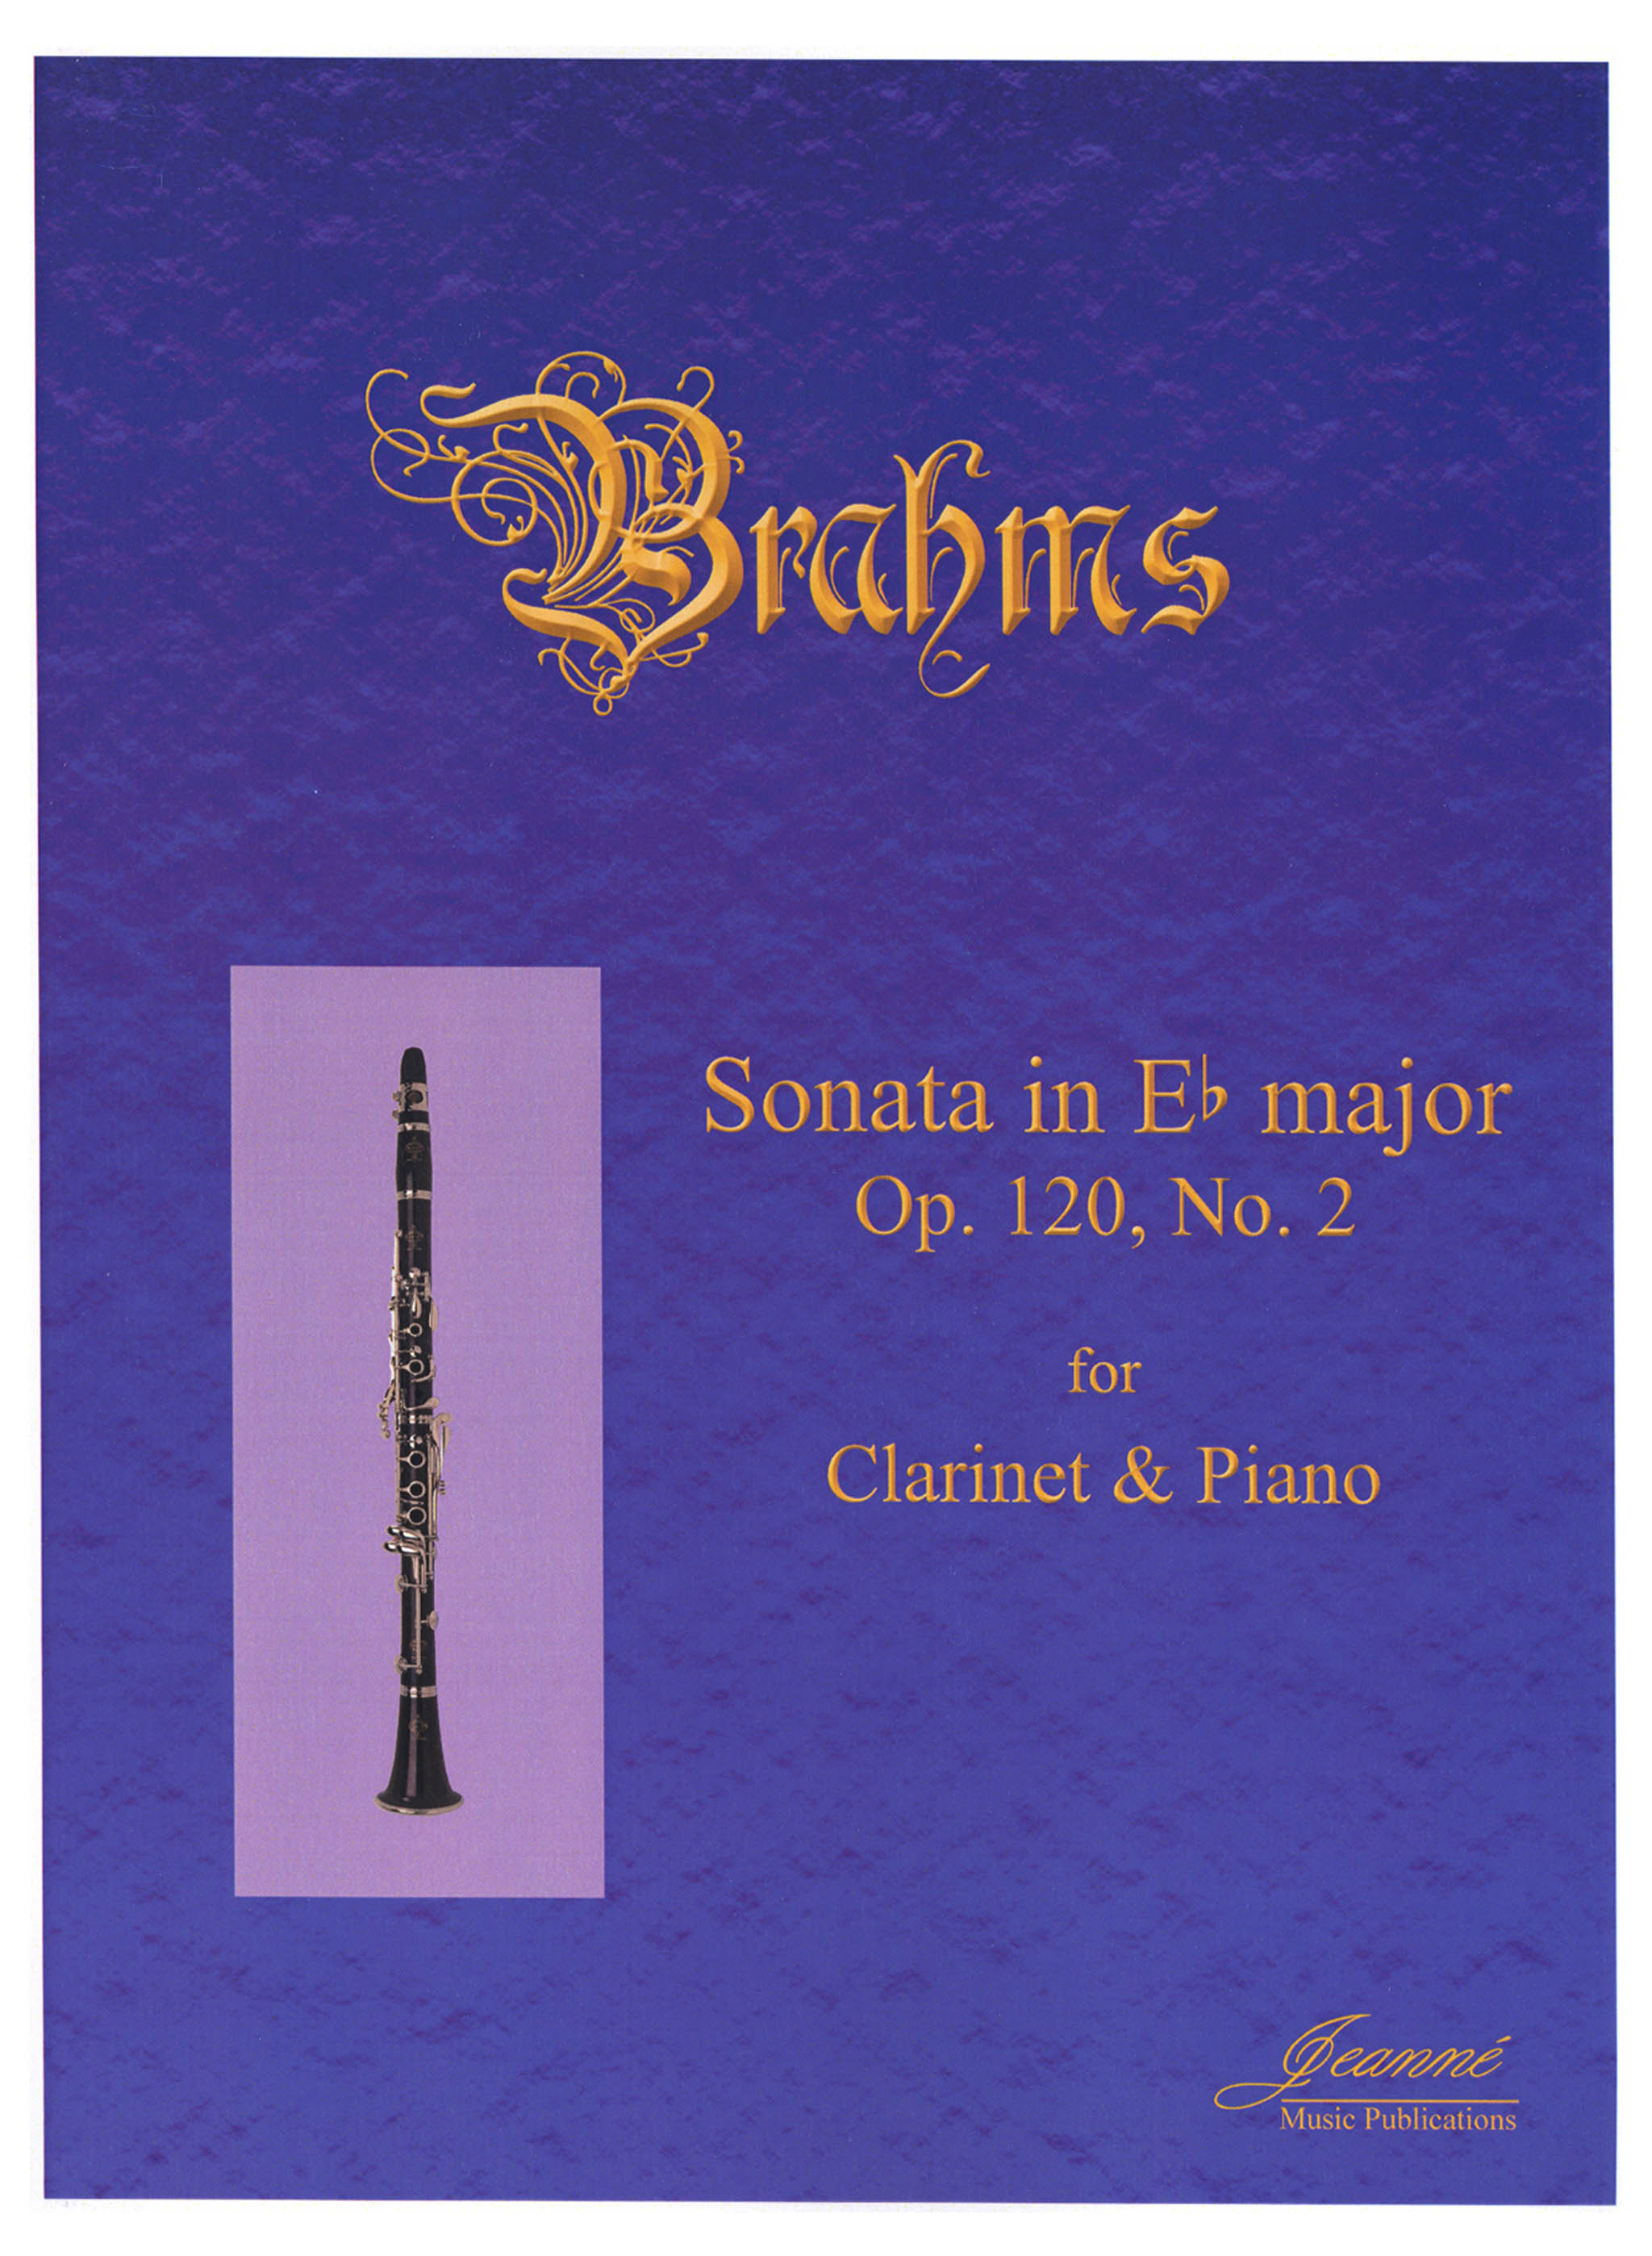 Brahms Sonata in E-flat Major, Op. 120 No. 2 Cover